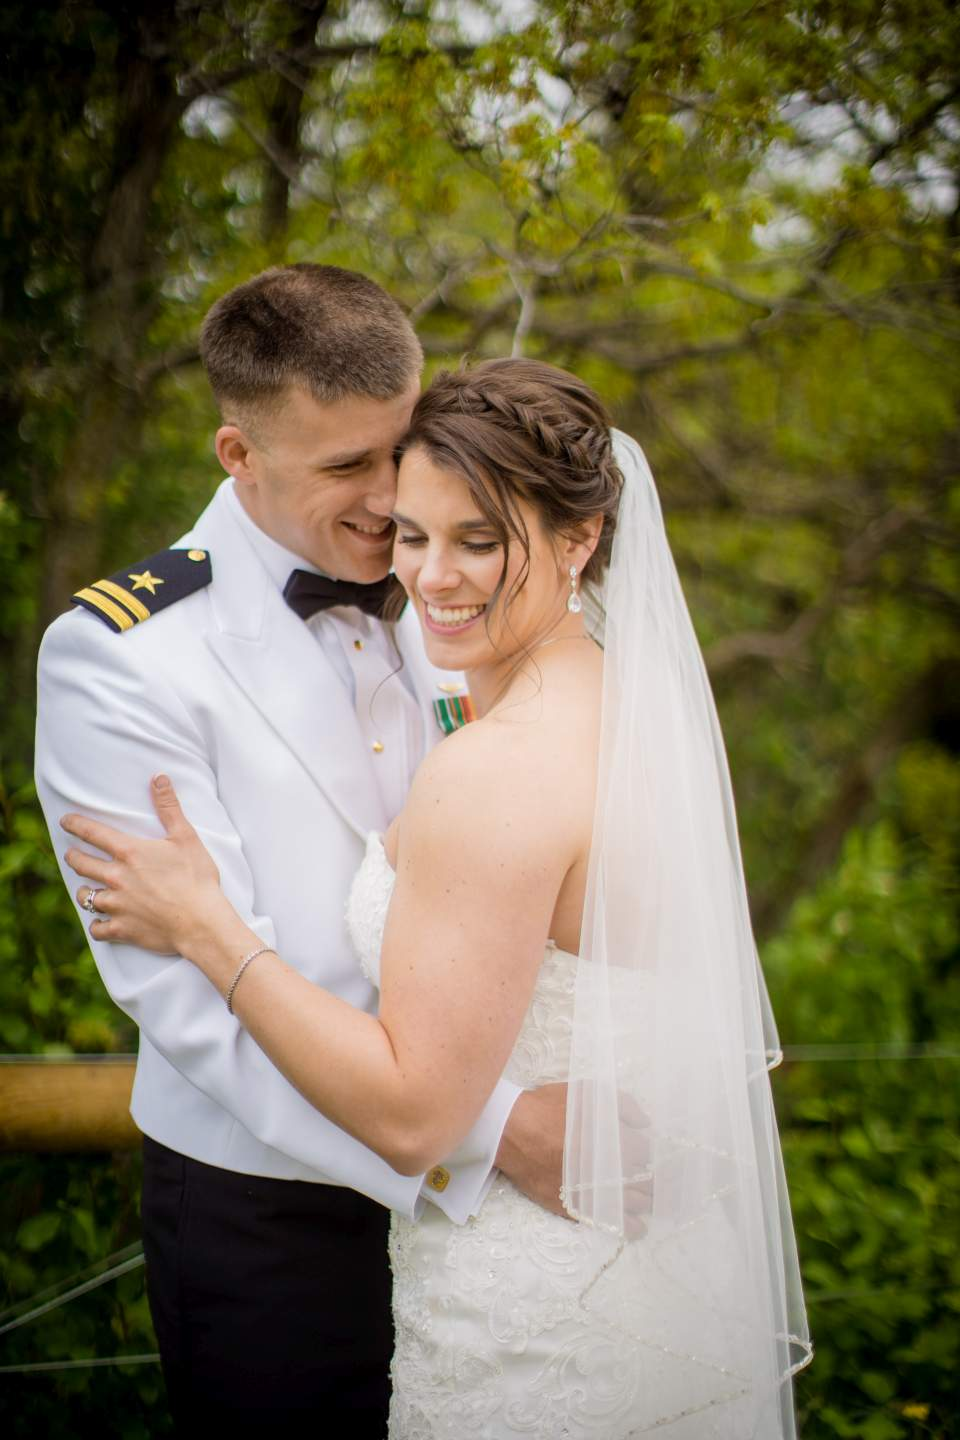 portraits that focus on the beautiful bride